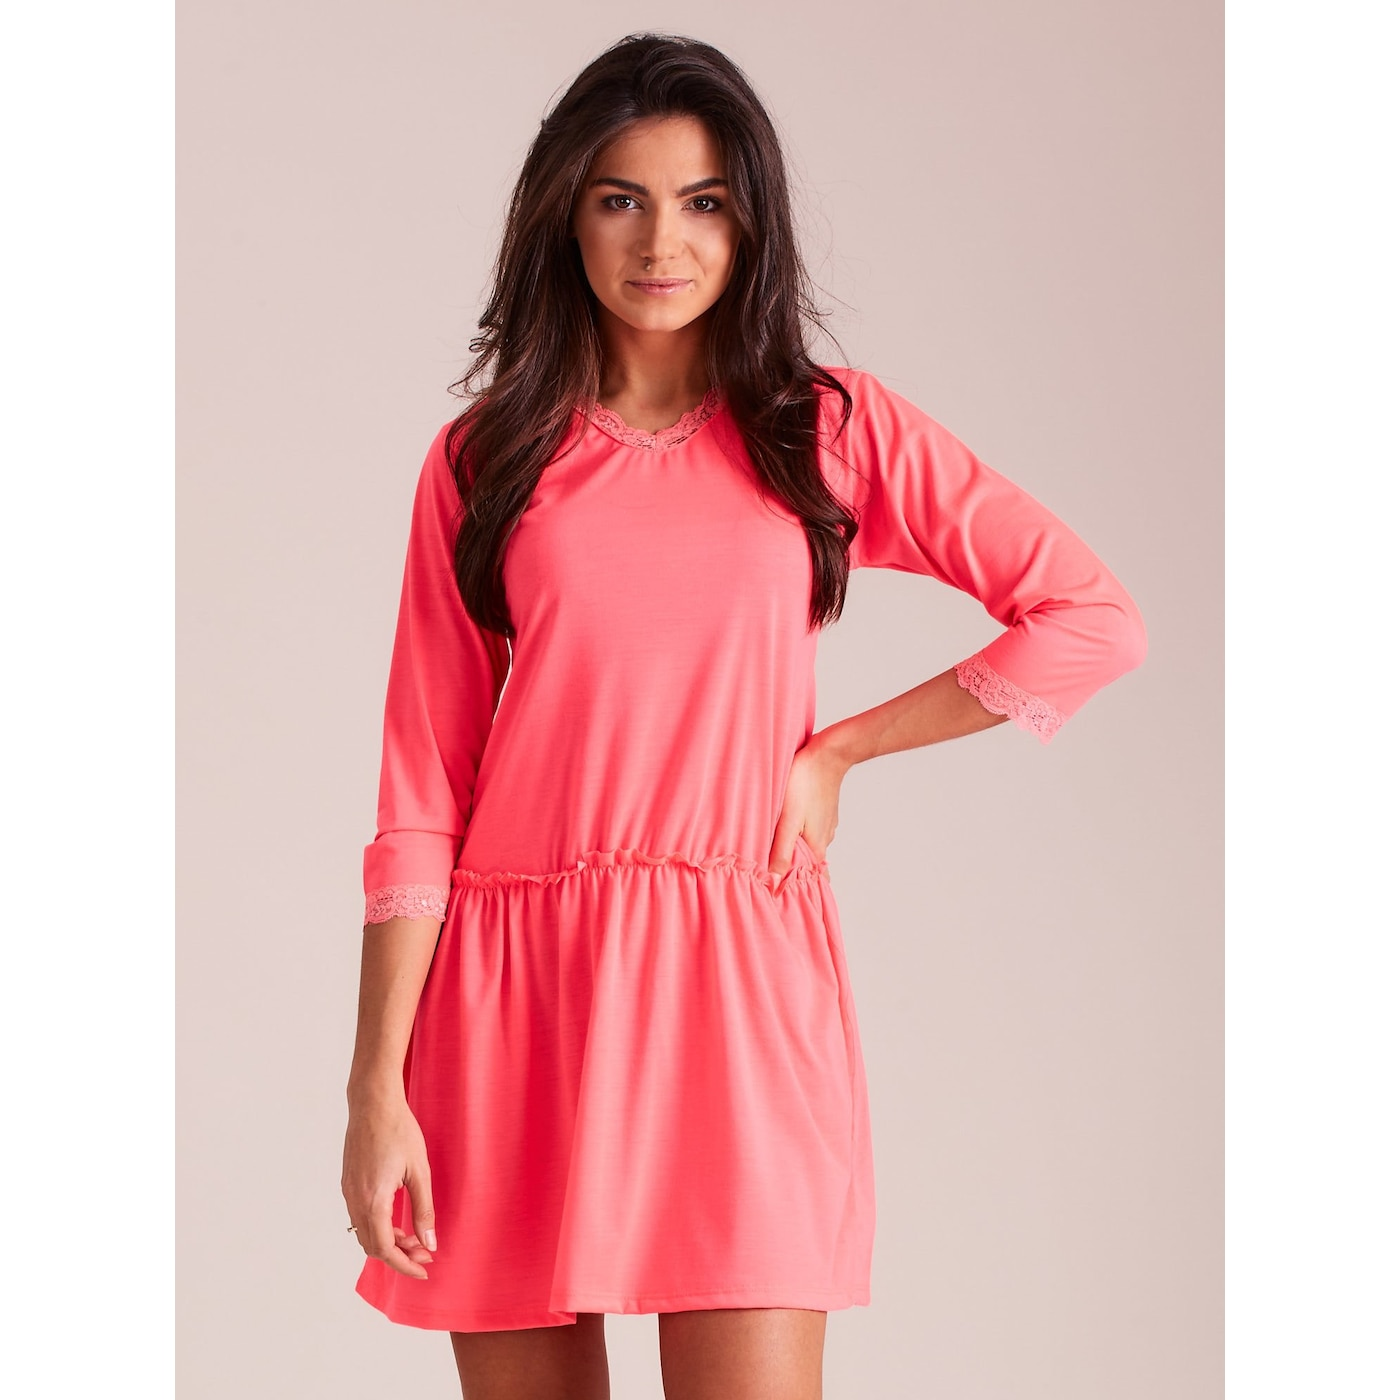 Fluo pink women´s dress with lace